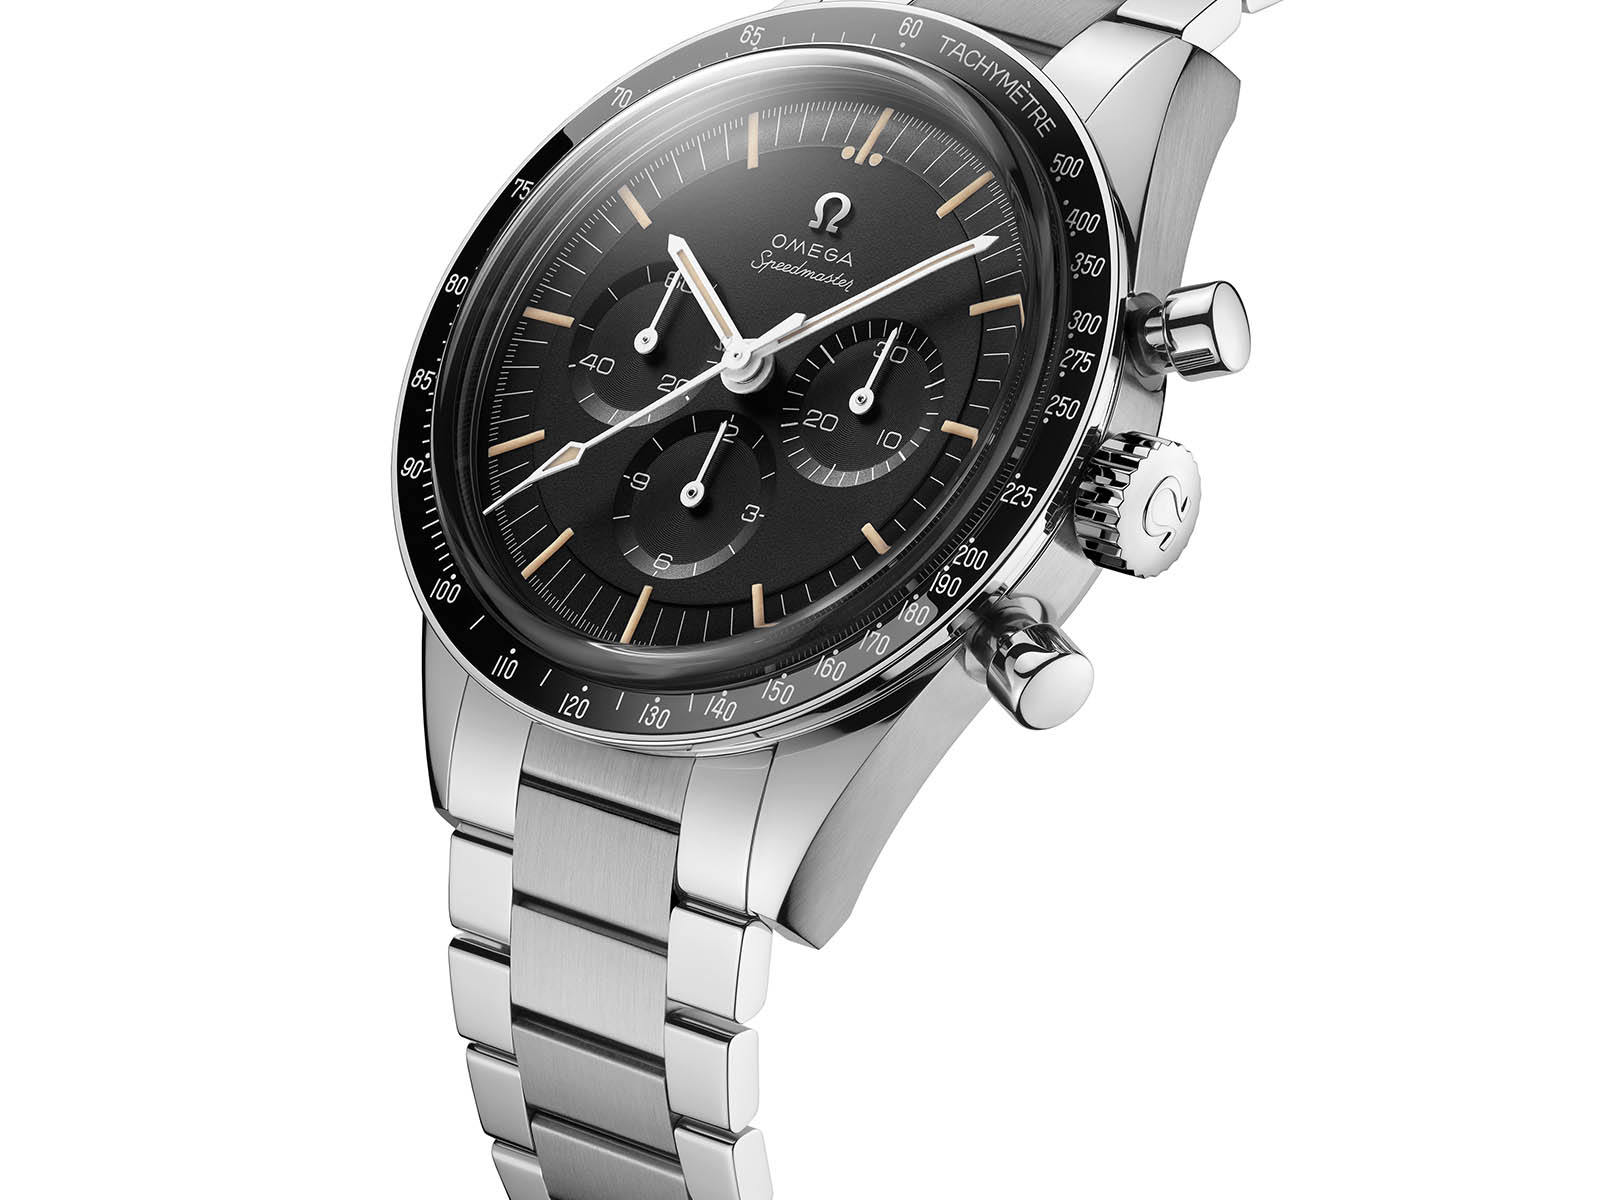 311-30-40-30-01-001-omega-speedmaster-moonwatch-chronograph-39-7-mm-3.jpg